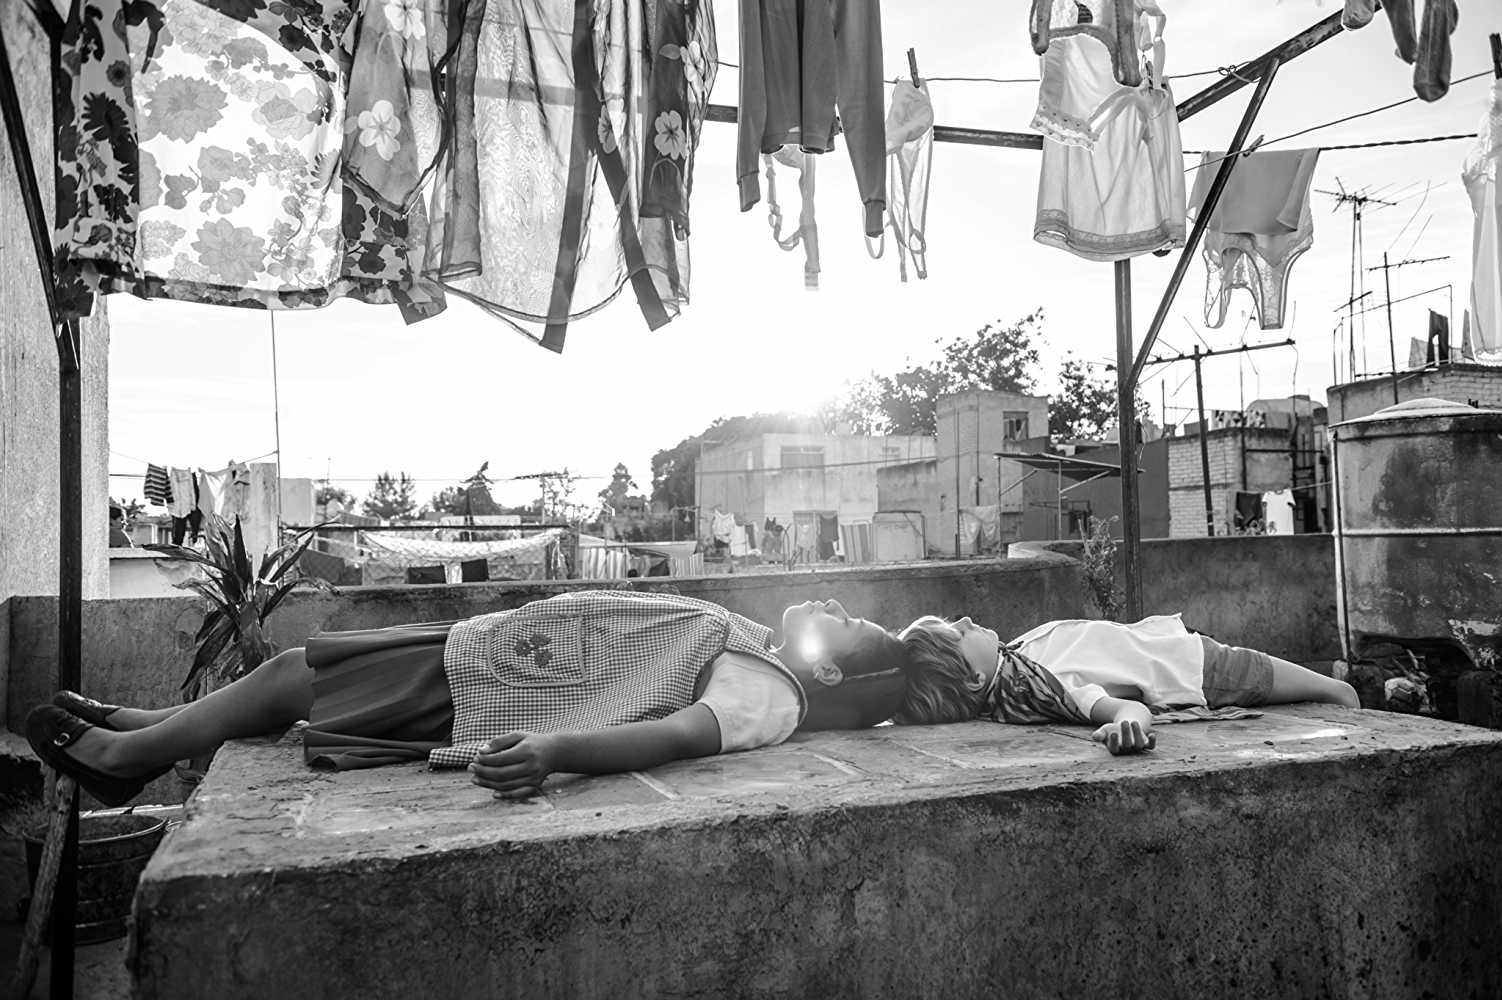 Netflix Releasing their Next Three Big Films including Roma in Theaters for 2018